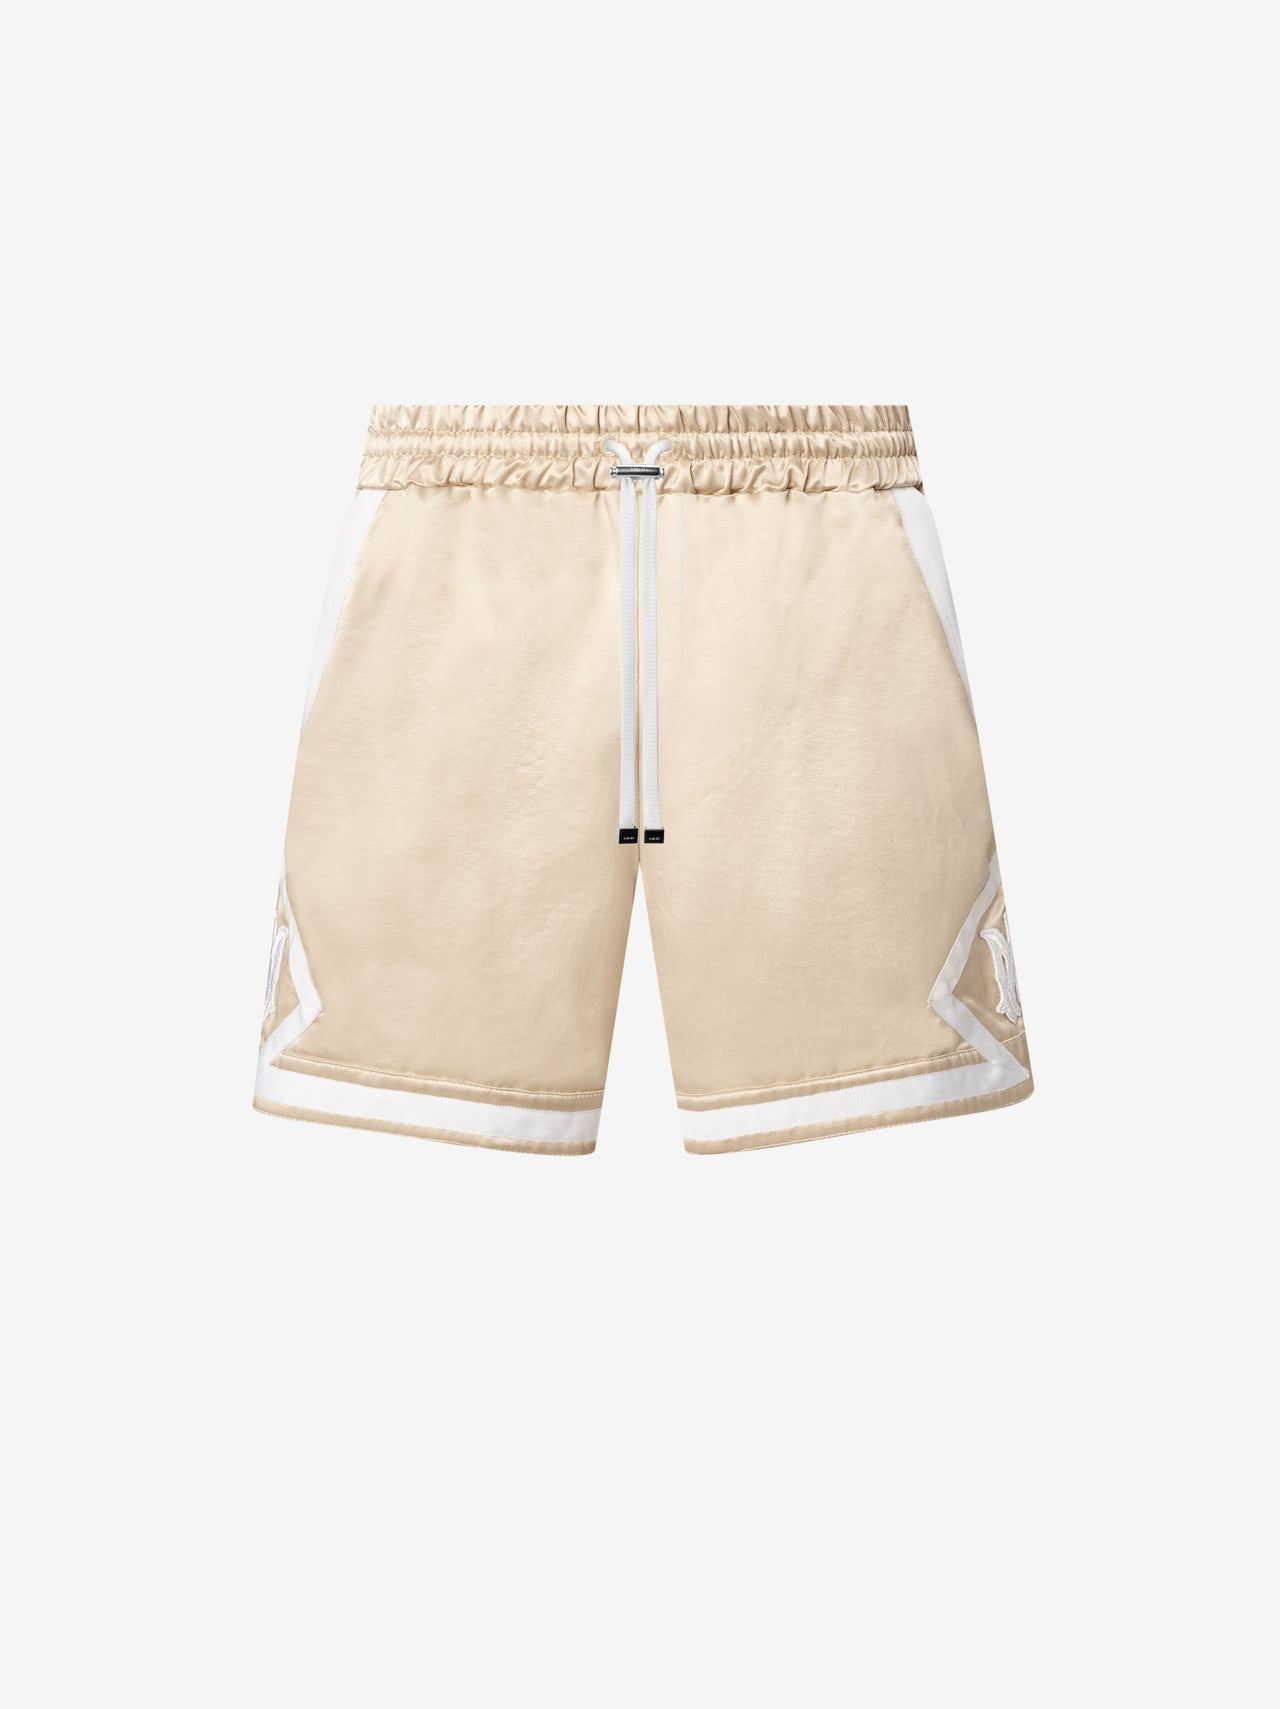 DRAWSTRING BOXING SHORT - CHAMPAGNE / WHITE